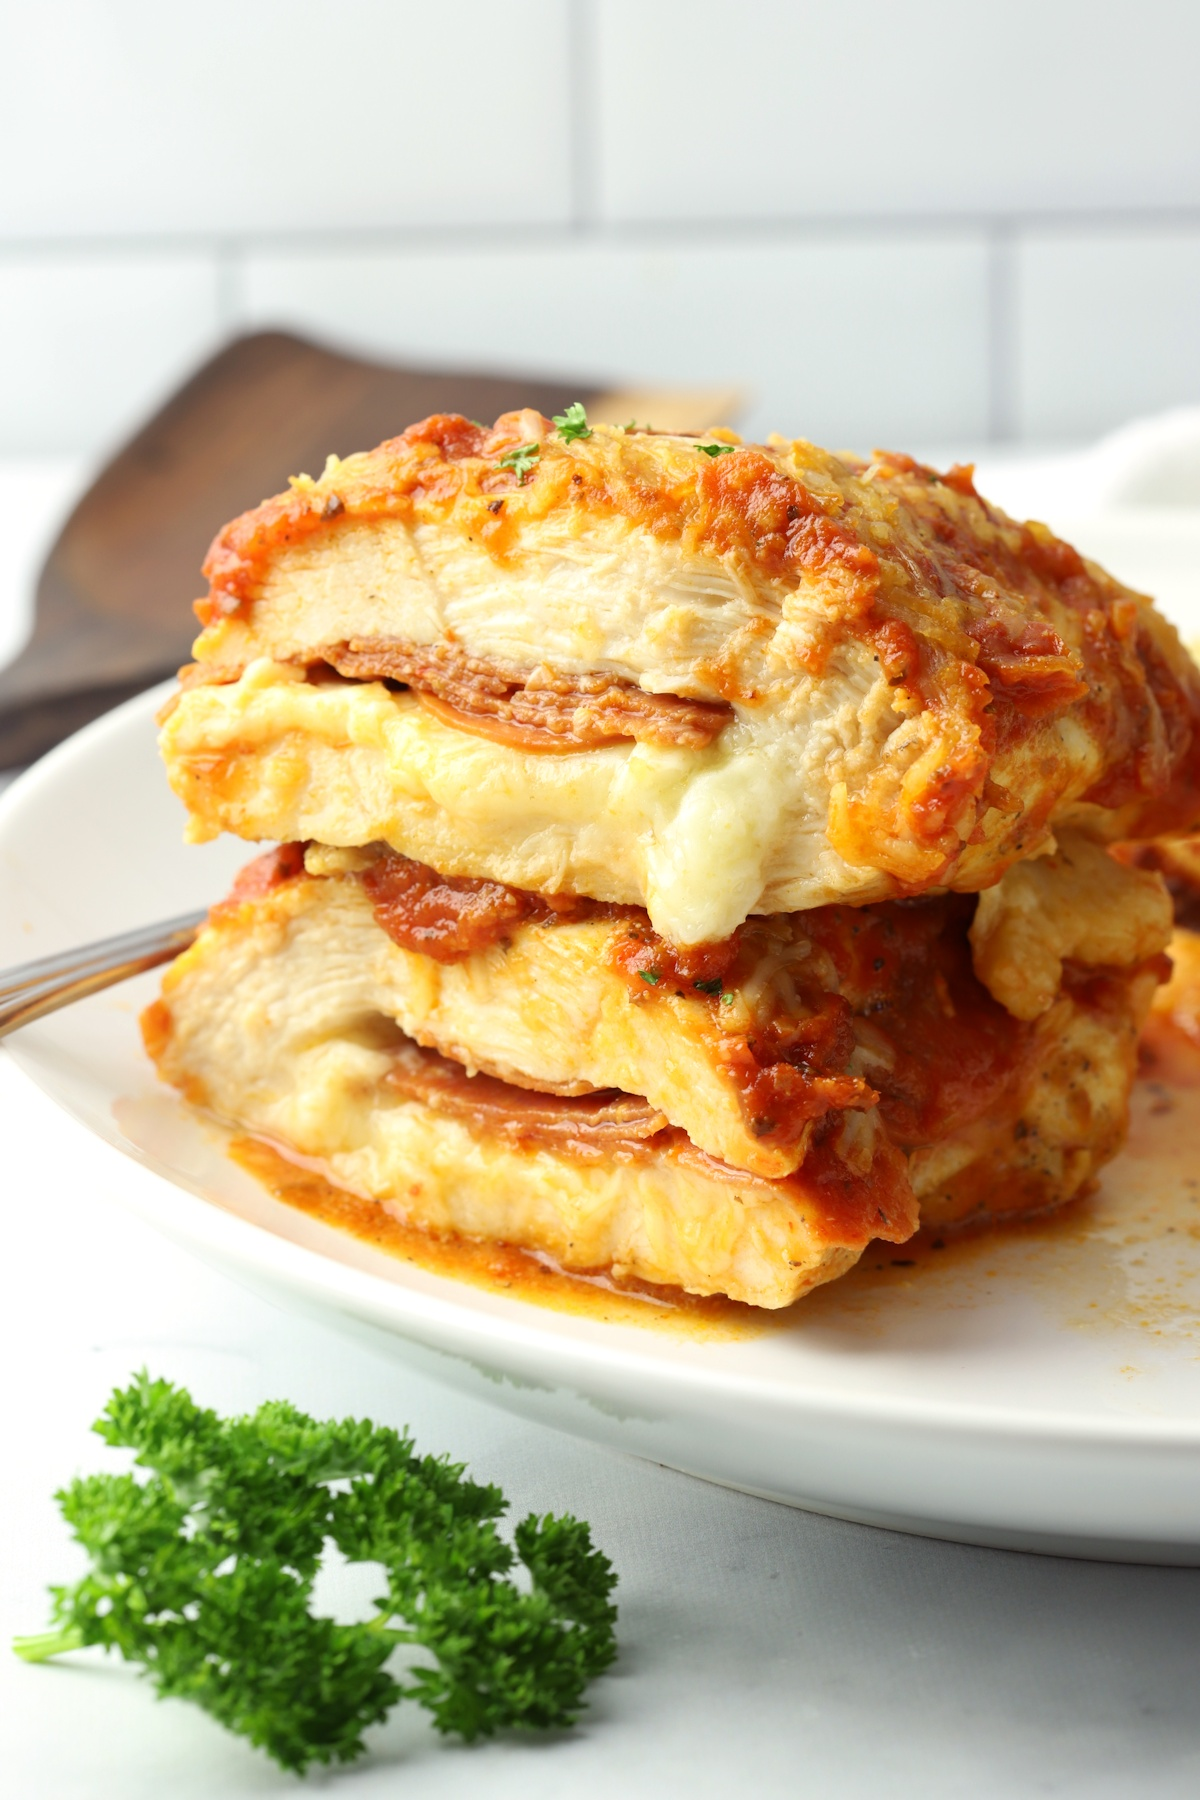 Chicken breast cut in half with pepperoni and cheese in the middle.